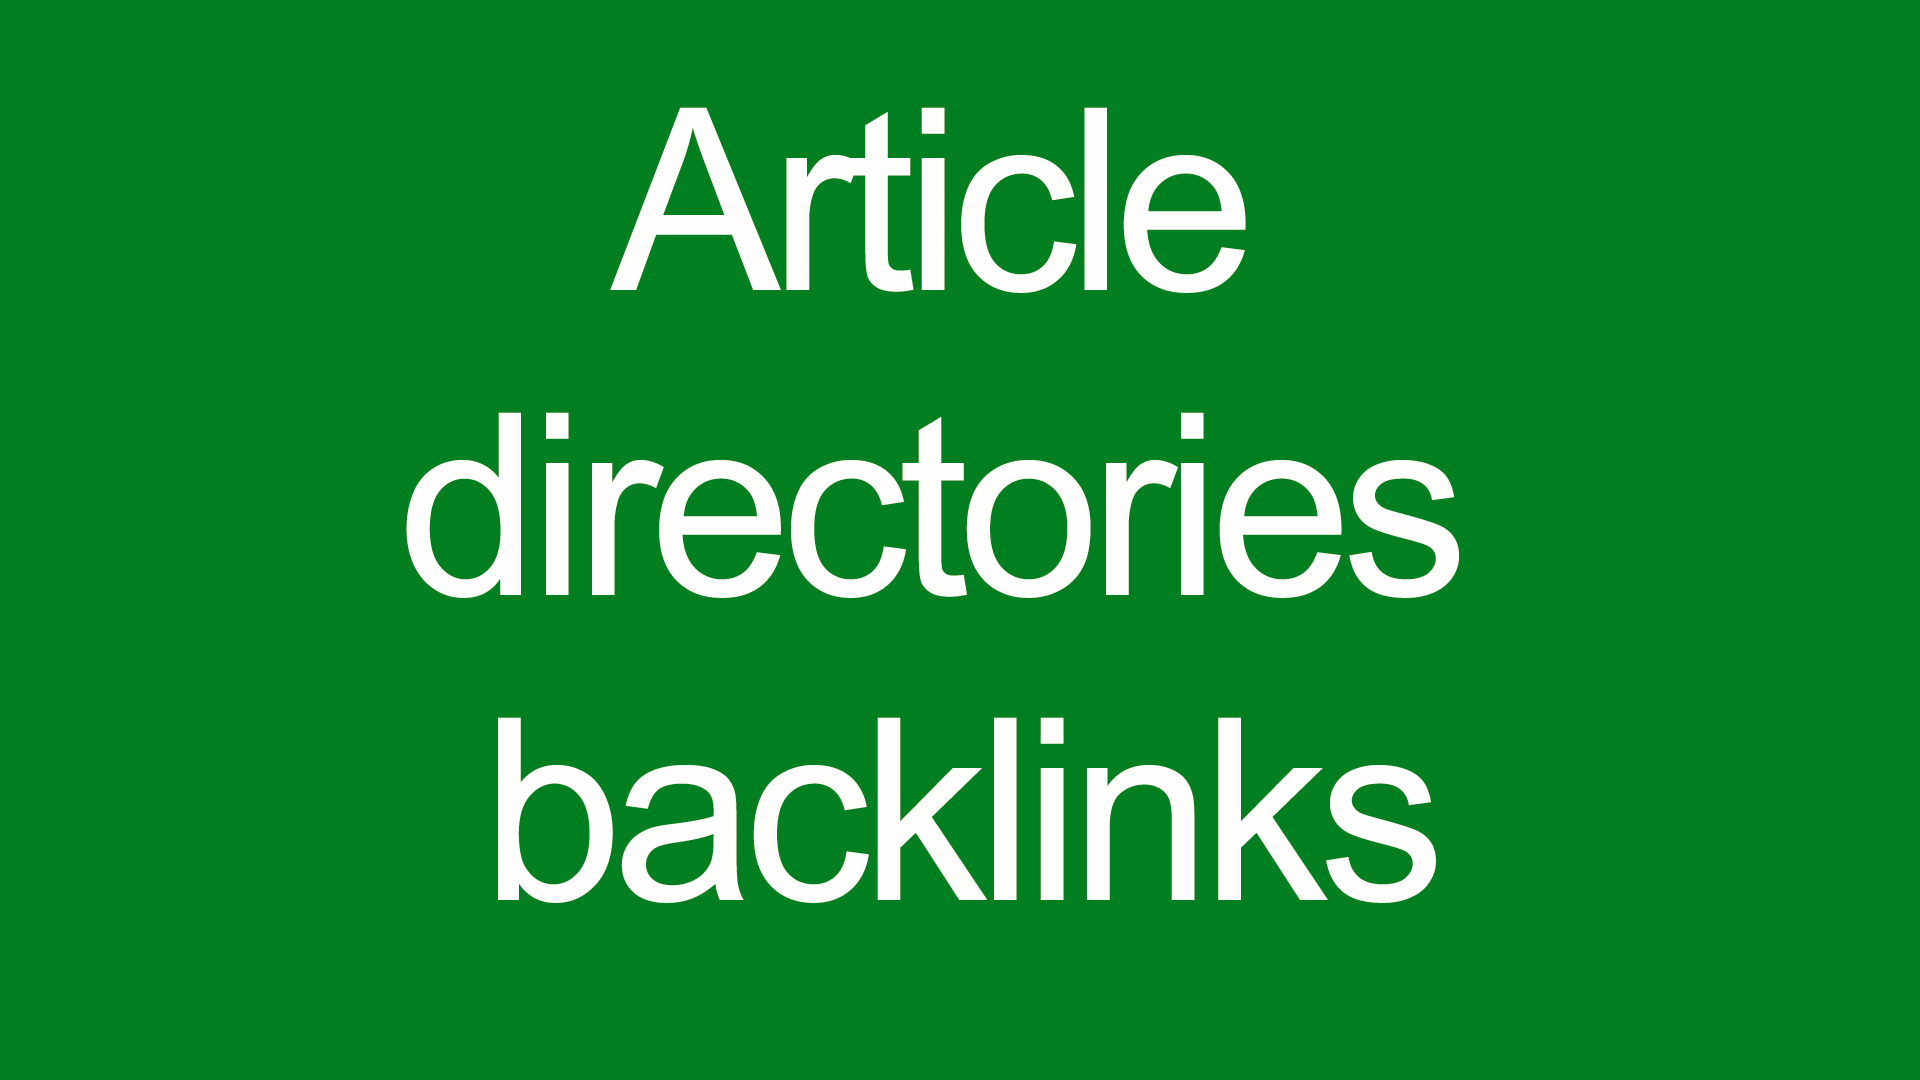 Article directories backlinks contextual backlinks 2000 backlinks